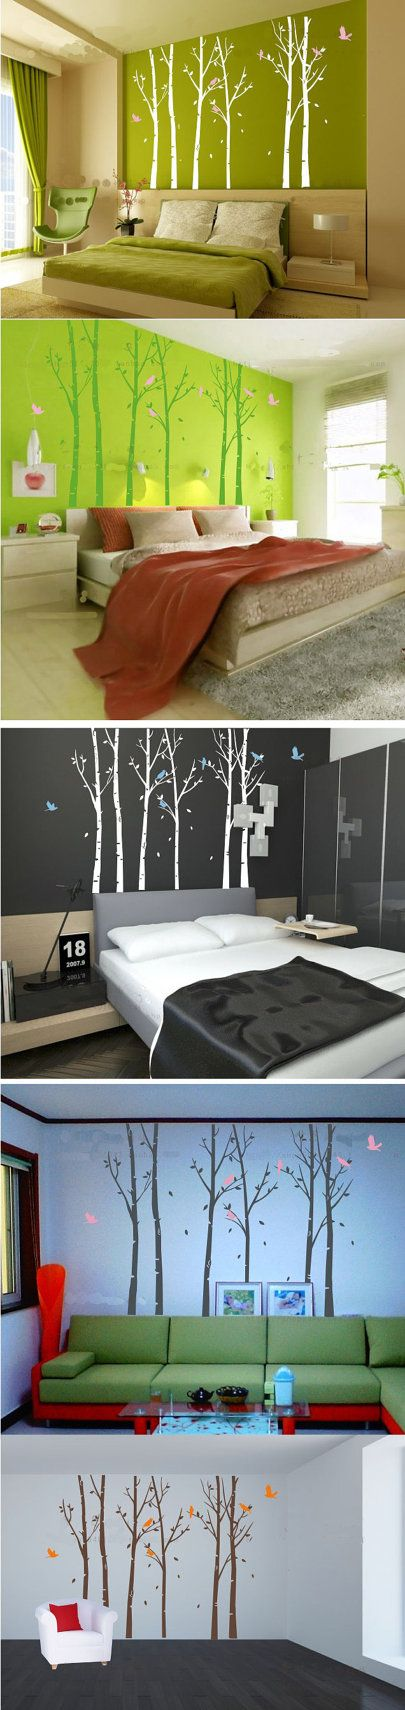 Tree wall decal big trees wall vinylvinyl by theeasylife on etsy 77 00